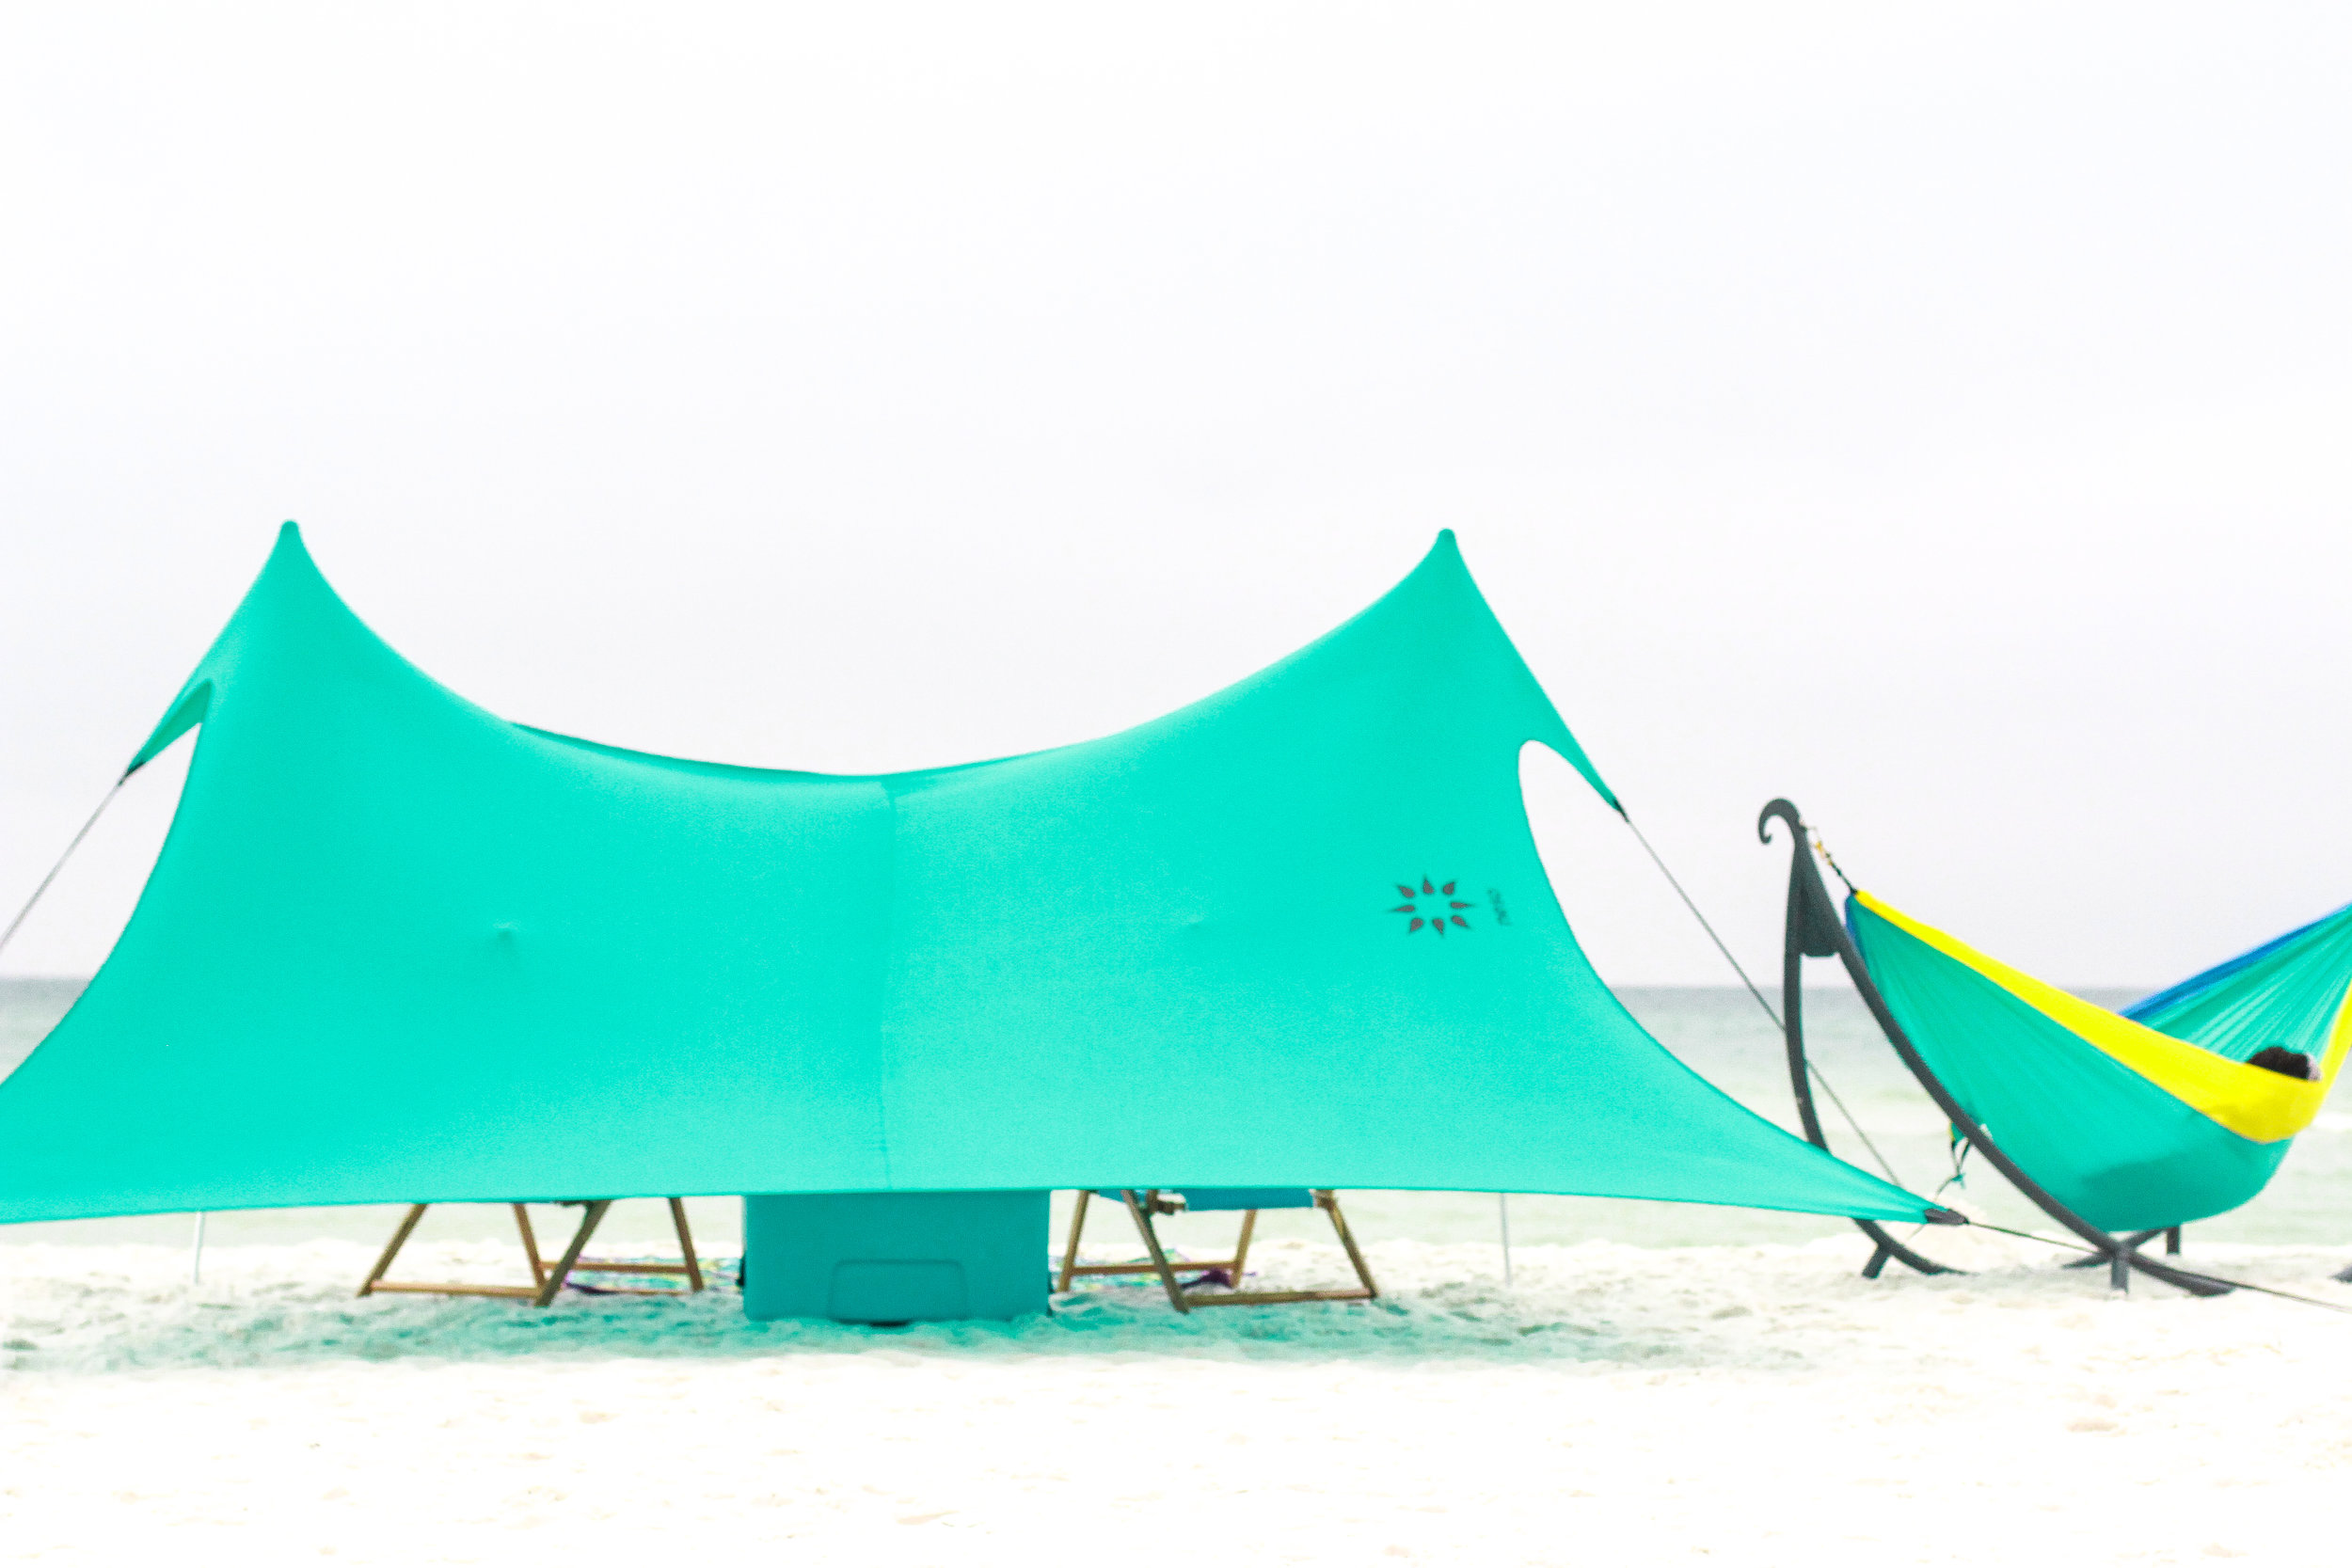 Shade Tents - $40 a day (tent & 2 low profile beach chairs)Lightweight & Easy To AssembleCall 850-249-0552